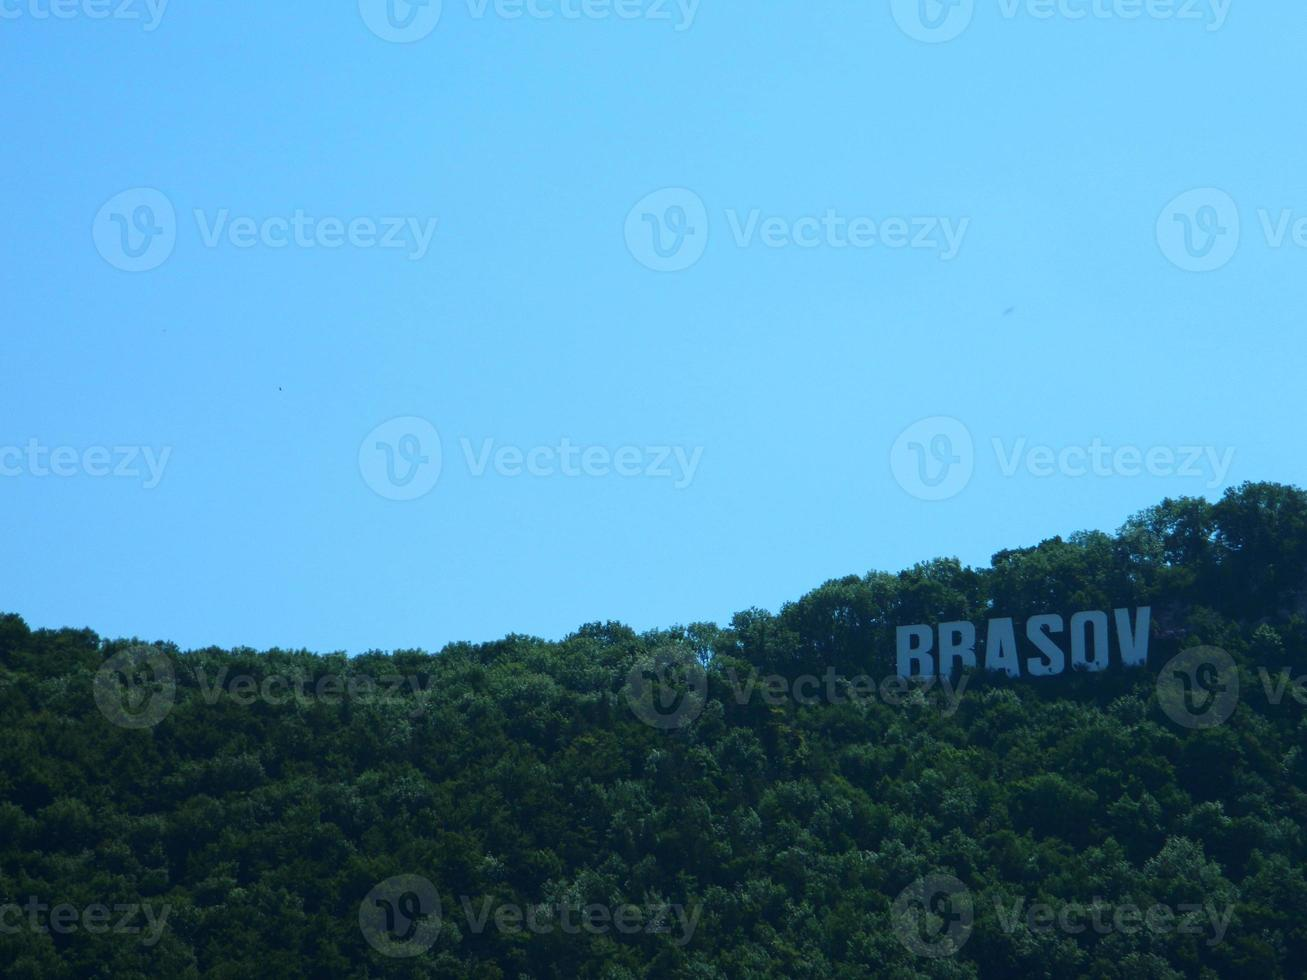 Brasov sign on top of Tampa hill. photo